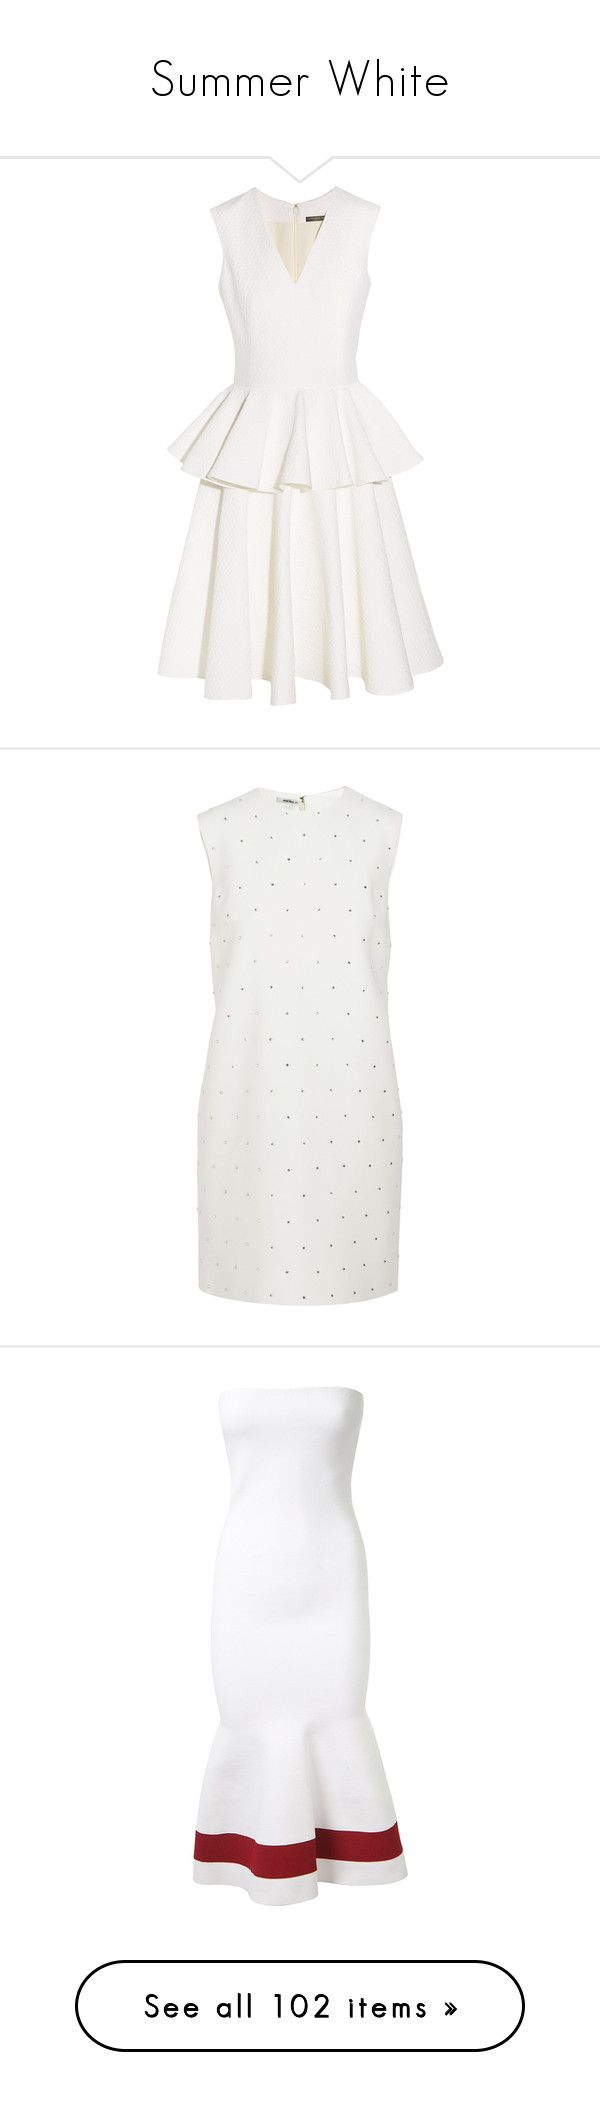 """""""Summer White"""" by belinda-1 ❤ liked on Polyvore featuring dresses, alexander mcqueen, short dresses, fit flare dress, night out dresses, going out dresses, white going out dresses, fit and flare party dress, miu miu and white"""